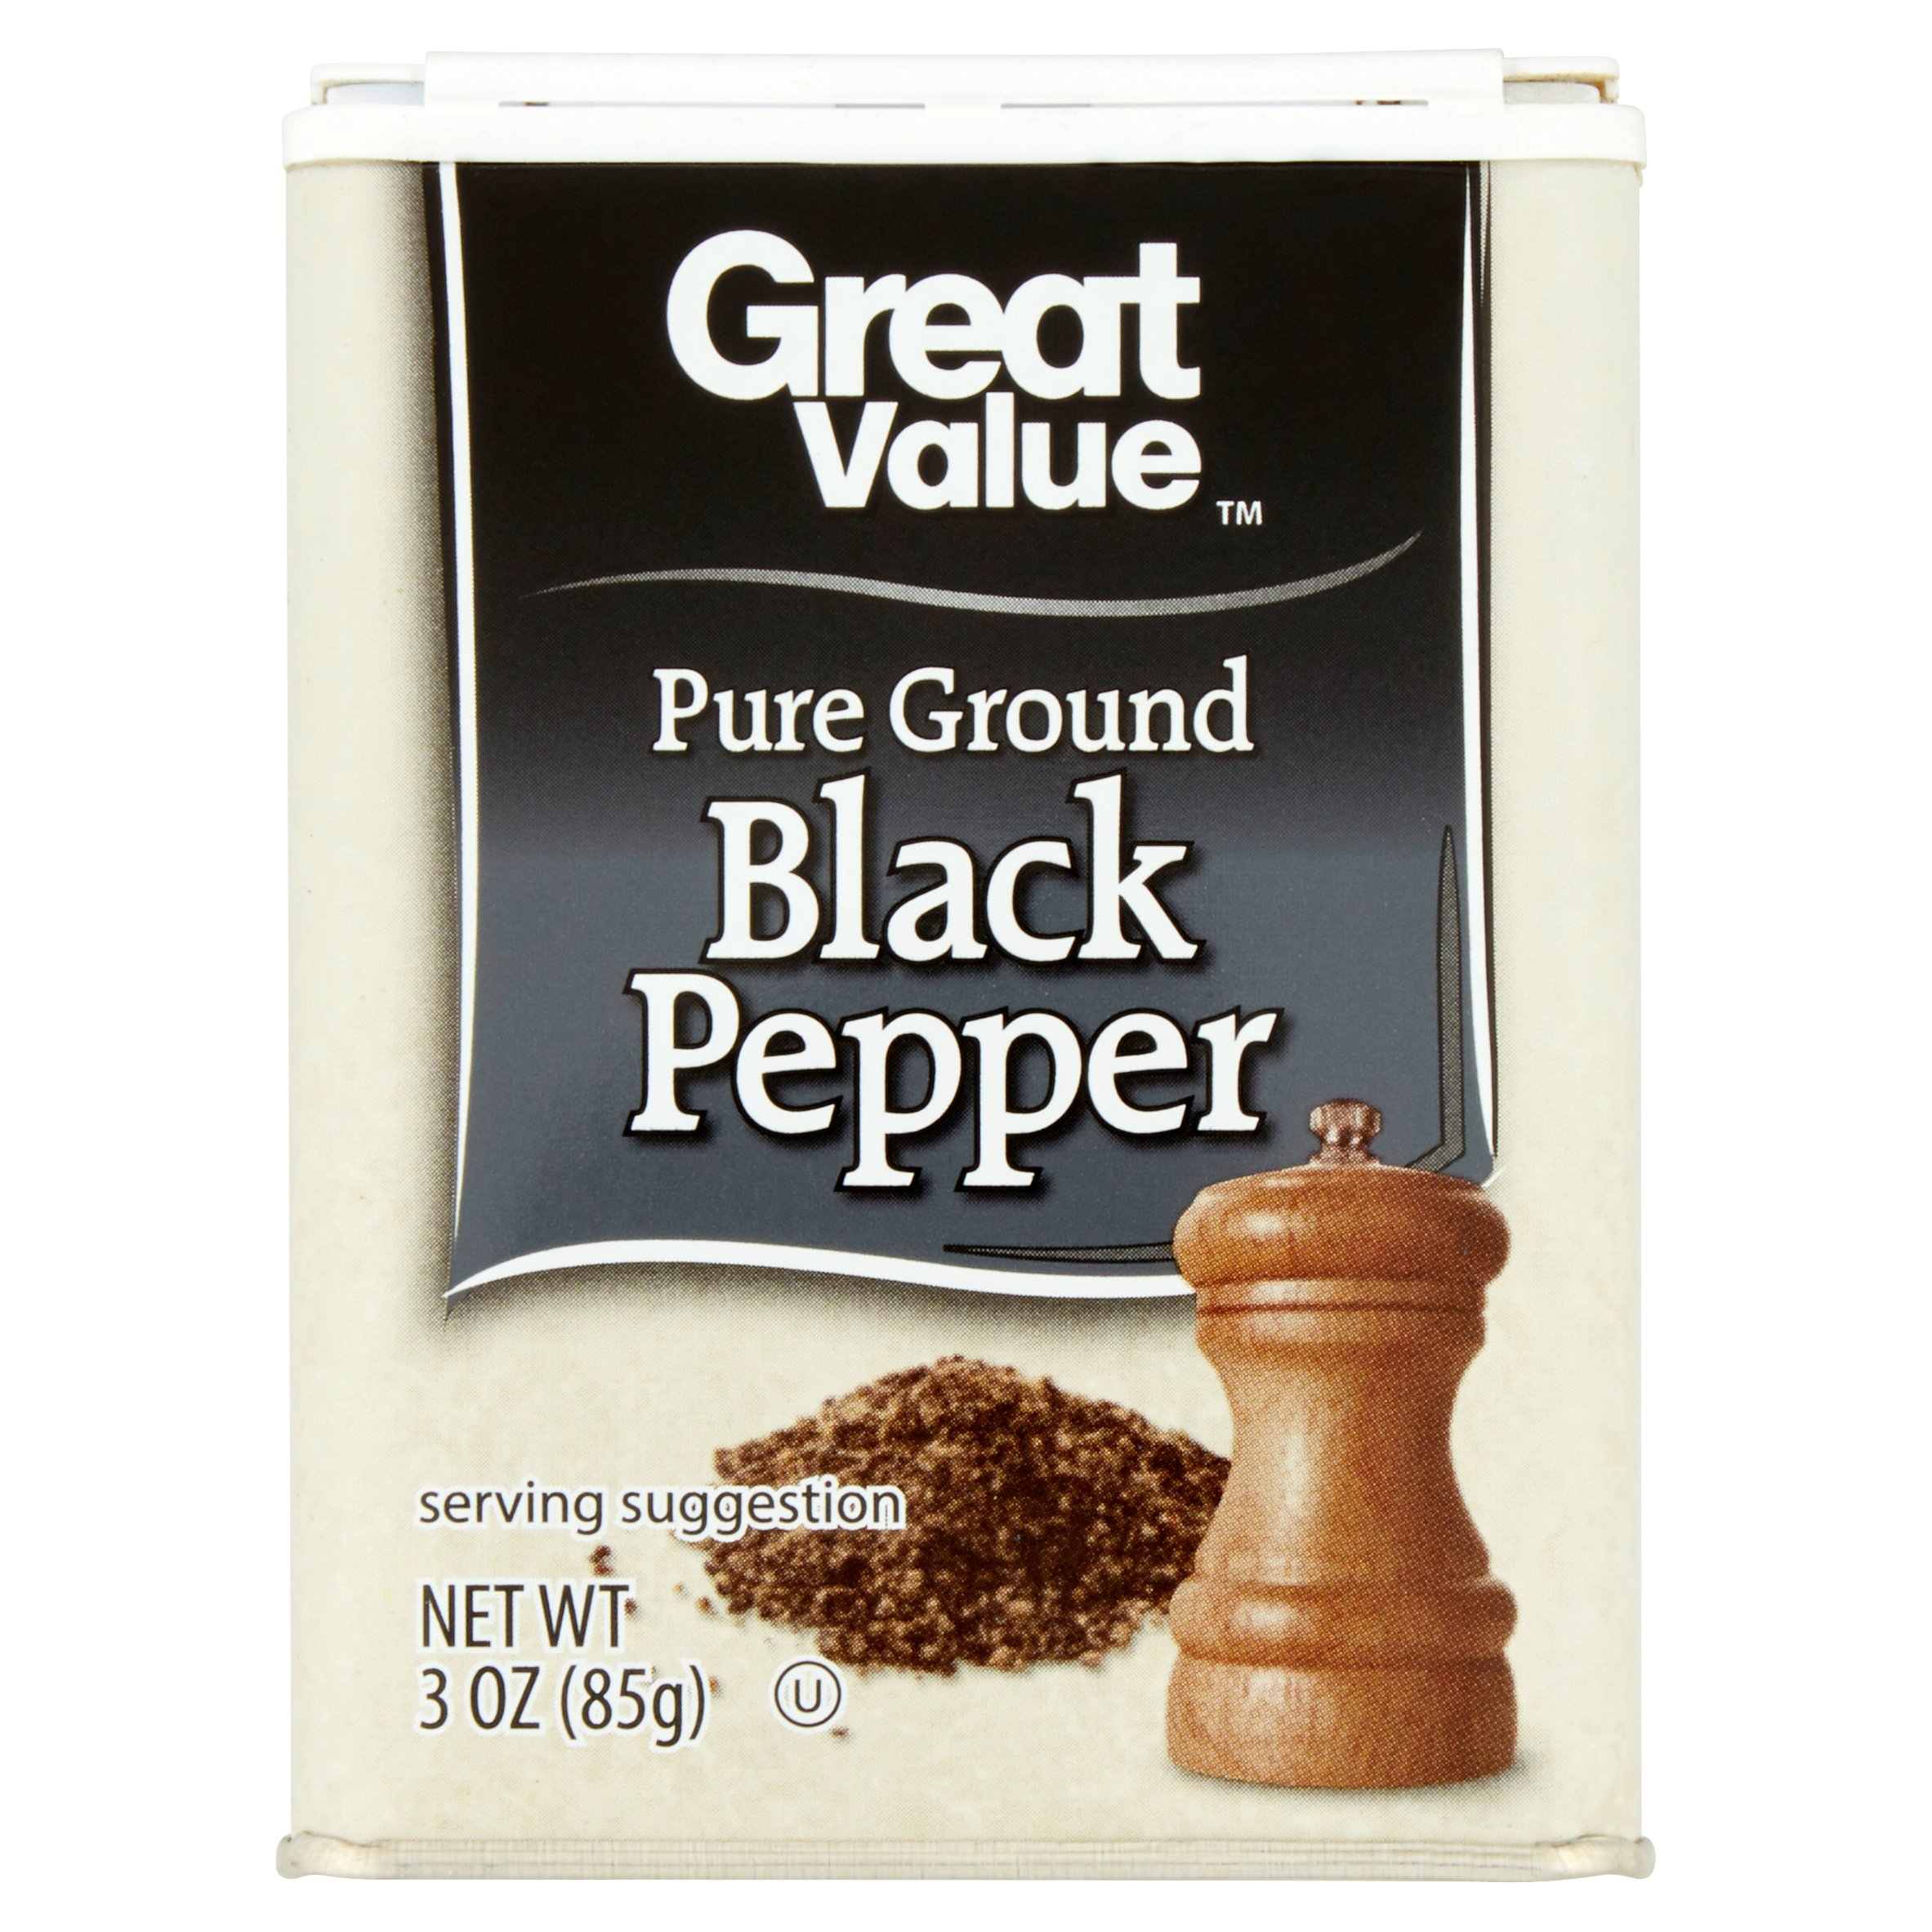 (2 Pack) Great Value Pure Ground Black Pepper, 3 oz